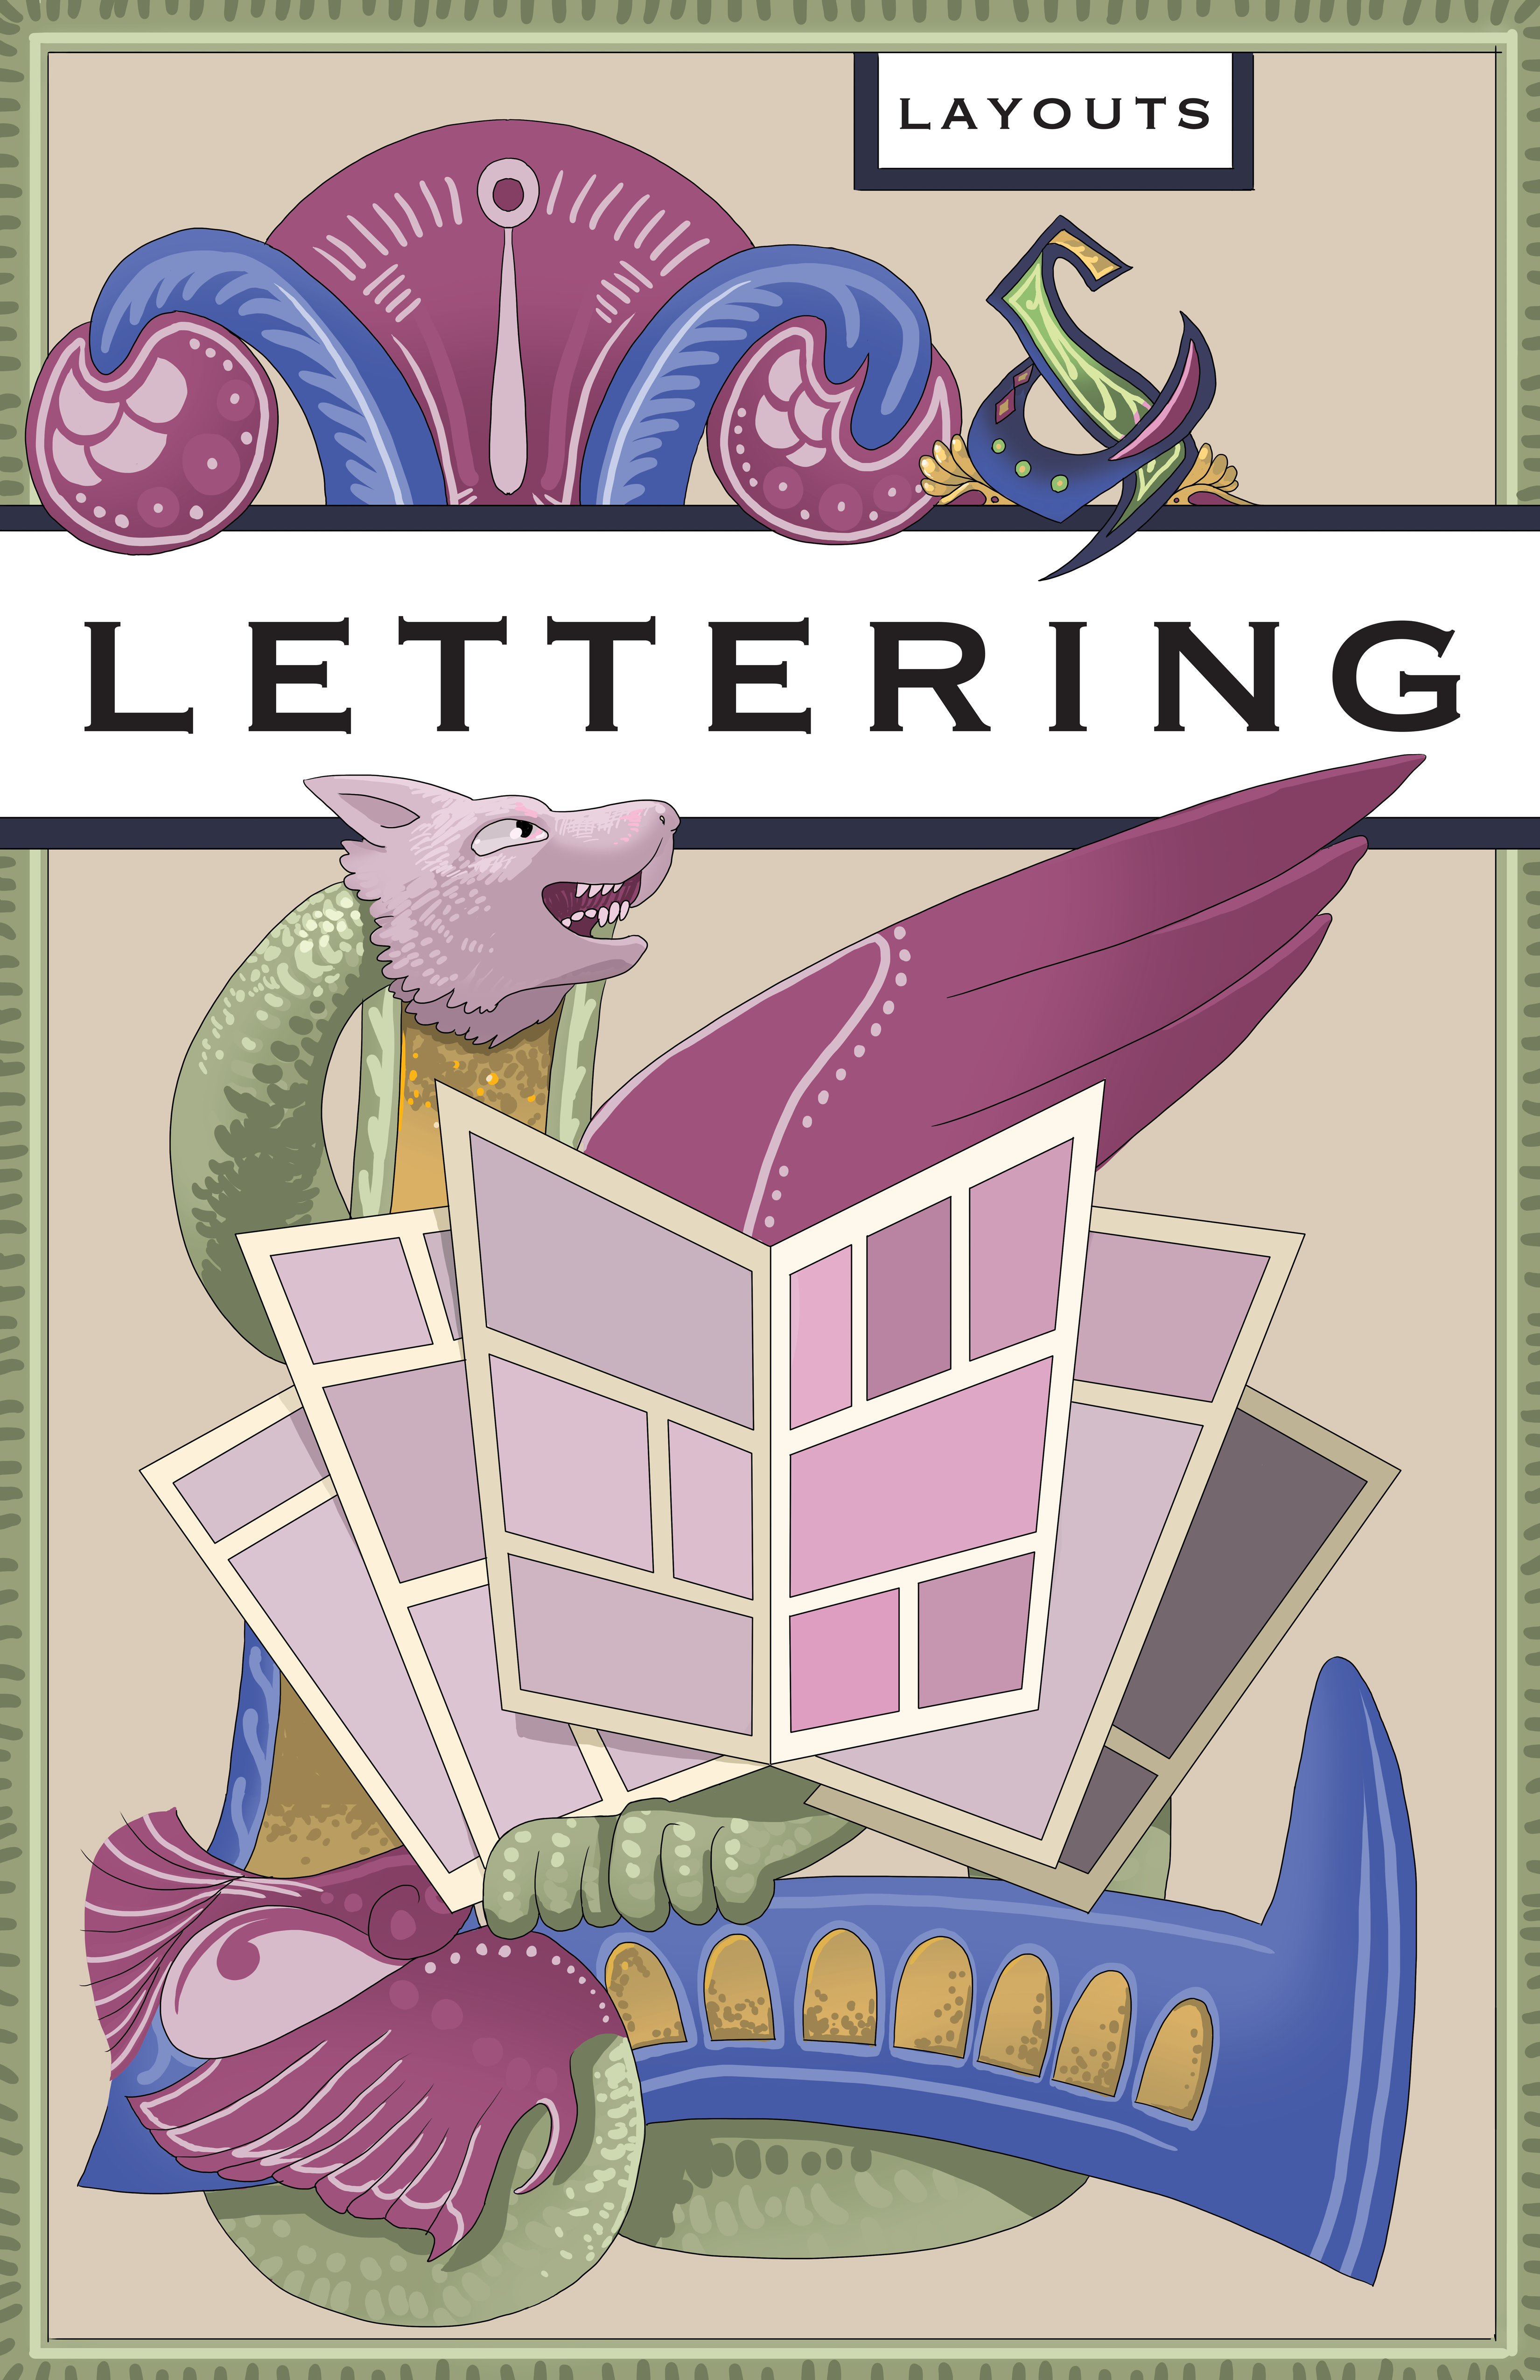 """A graphic containing layout and lettering examples, threaded through a medieval dragon. Text: """"Layout & Lettering. Dialogue! Sound effects!"""""""